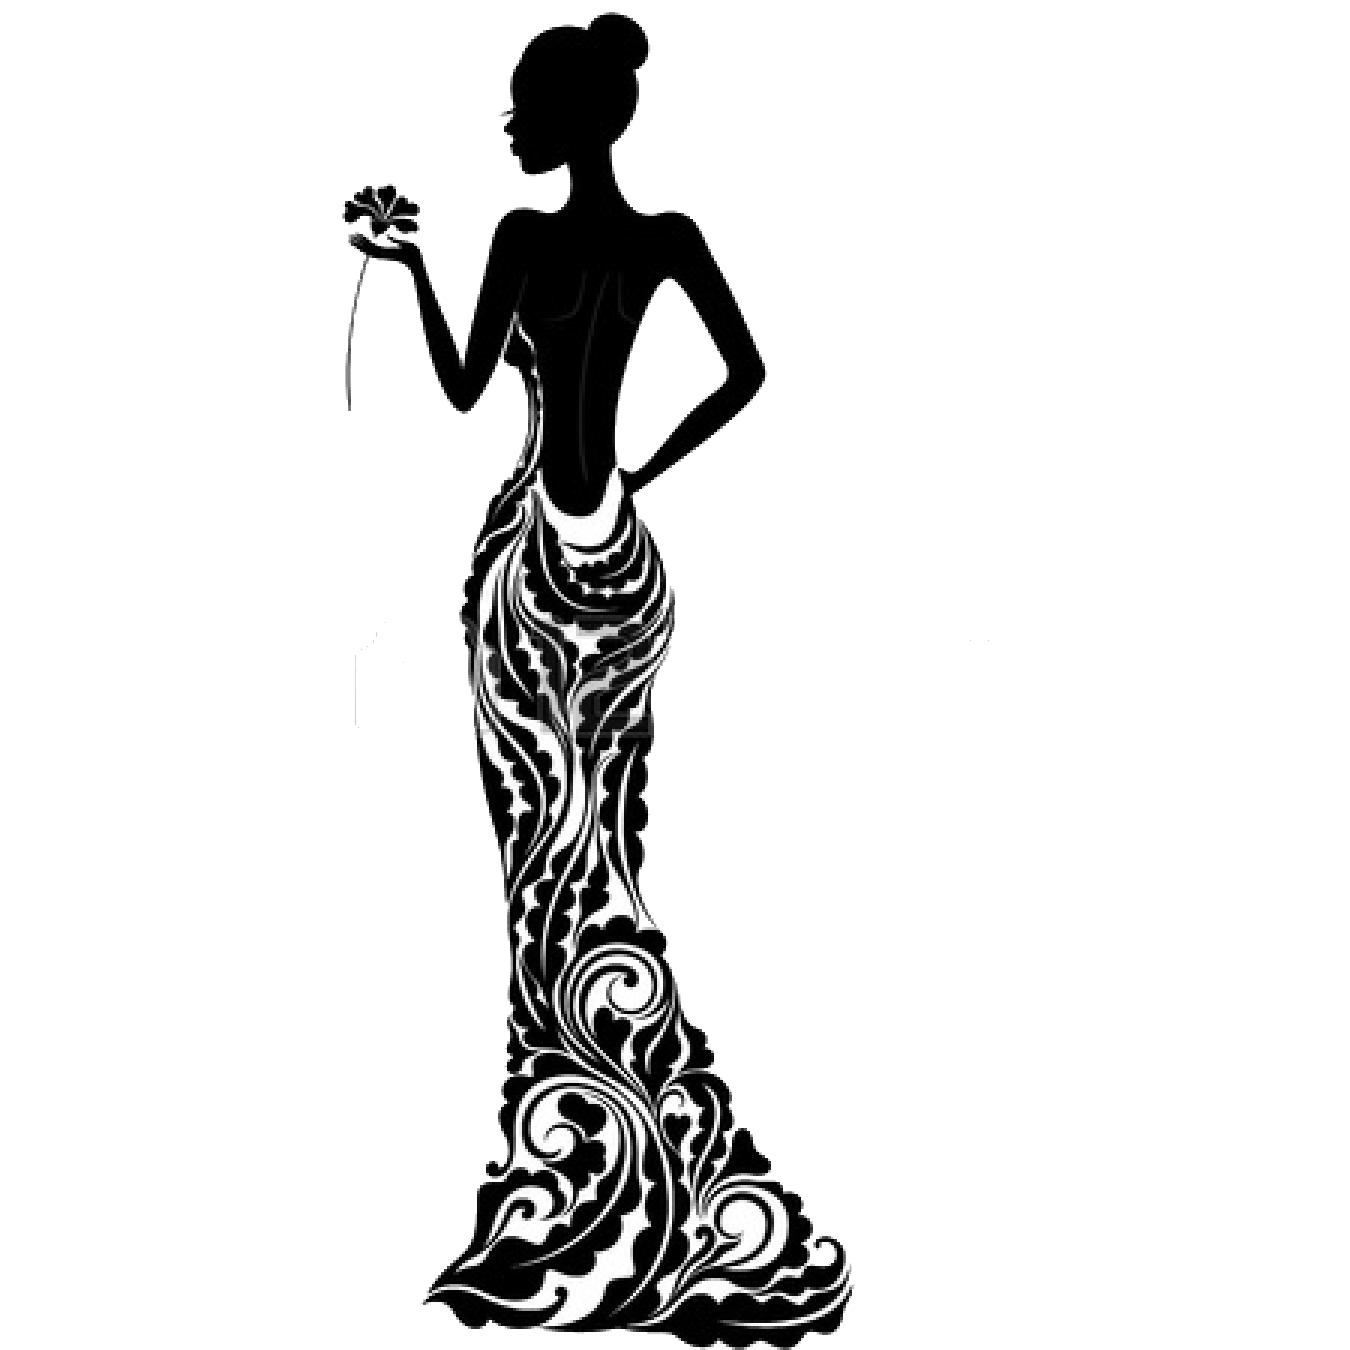 Fashion clipart fashion dummy. Mannequin silhouette at getdrawings